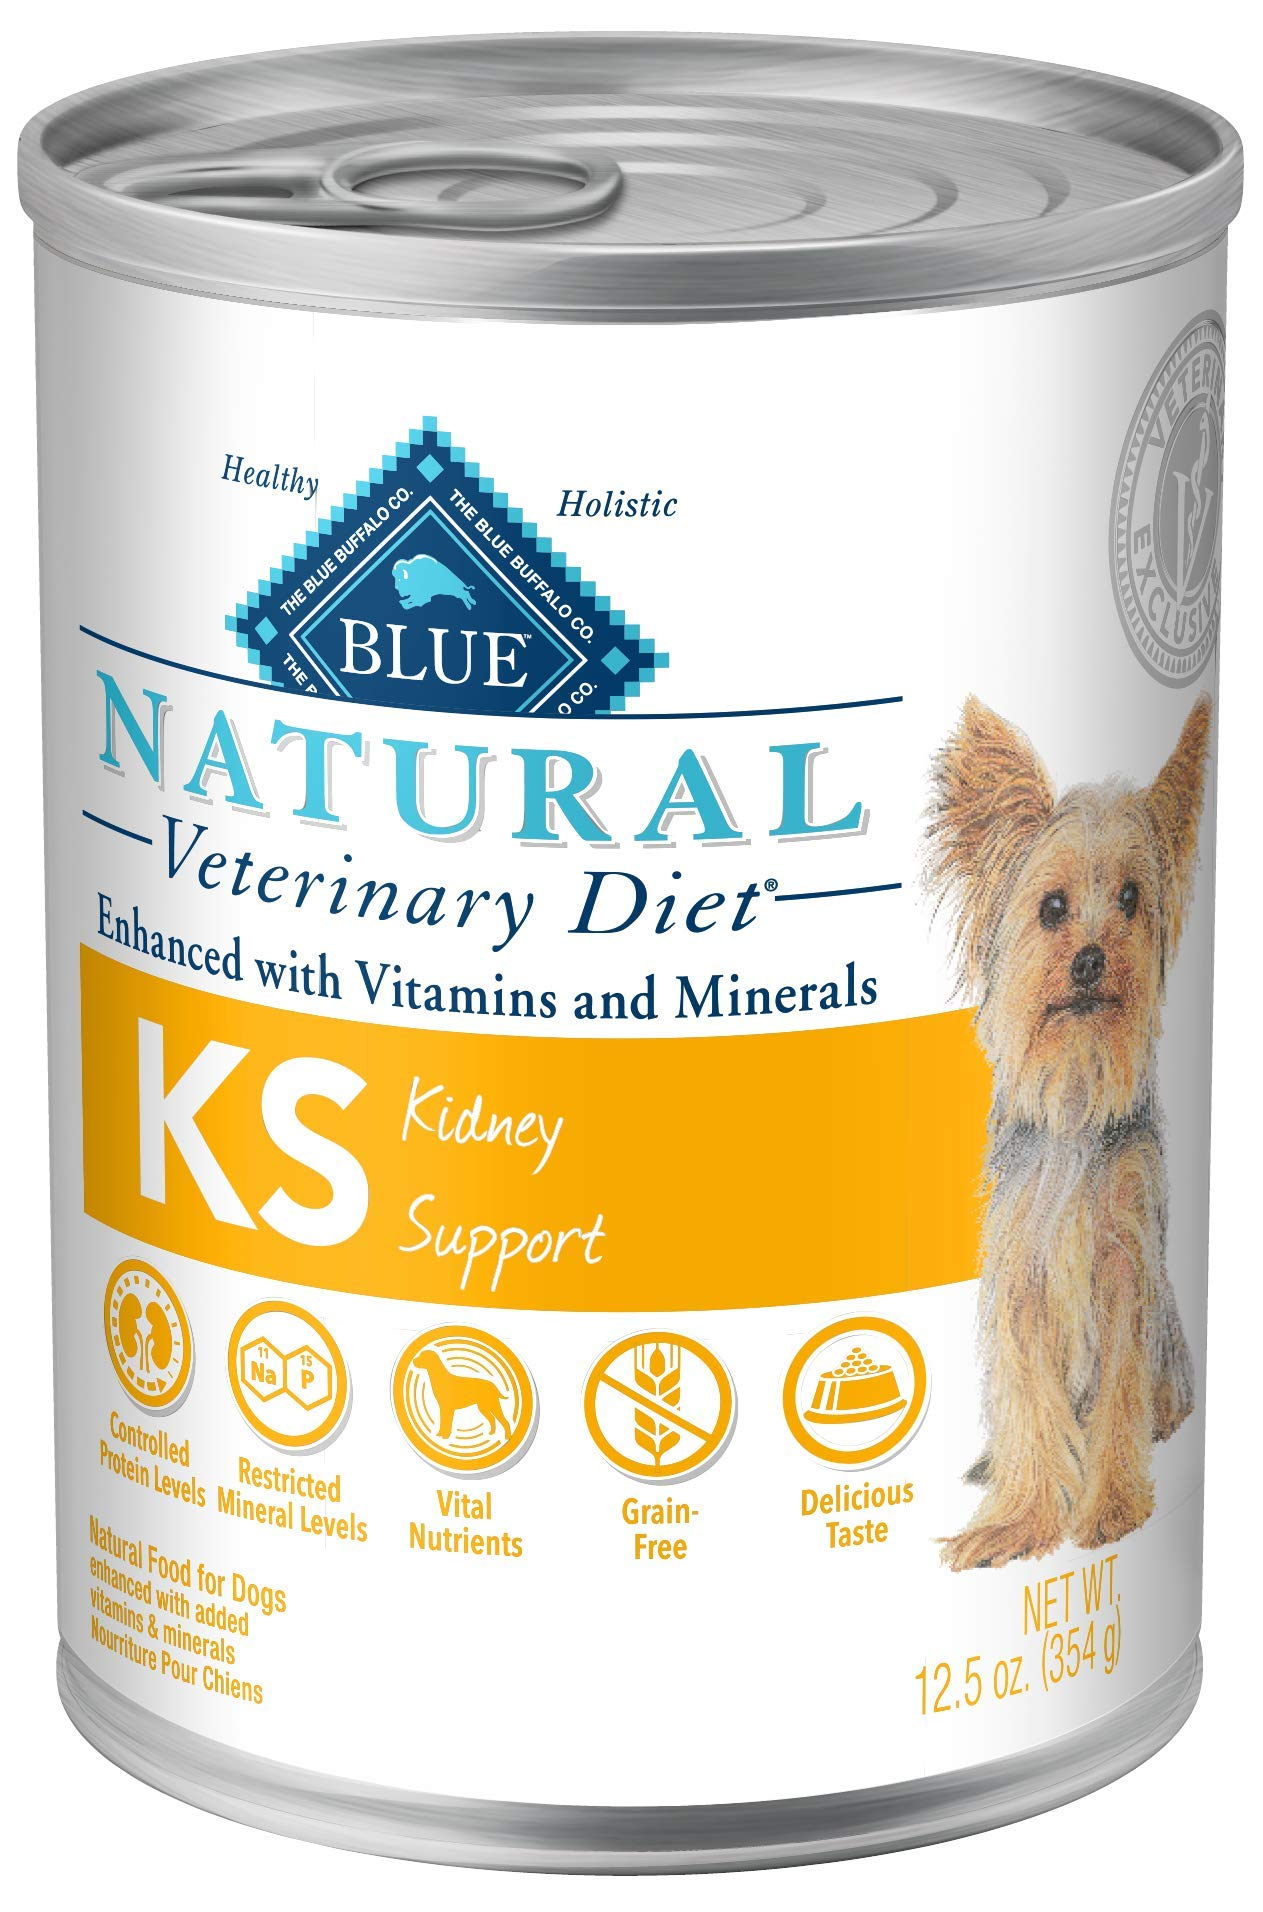 Kidney Support for Dogs 12.5oz, Pack of 12 by Blue Buffalo Natural Veterinary Diet